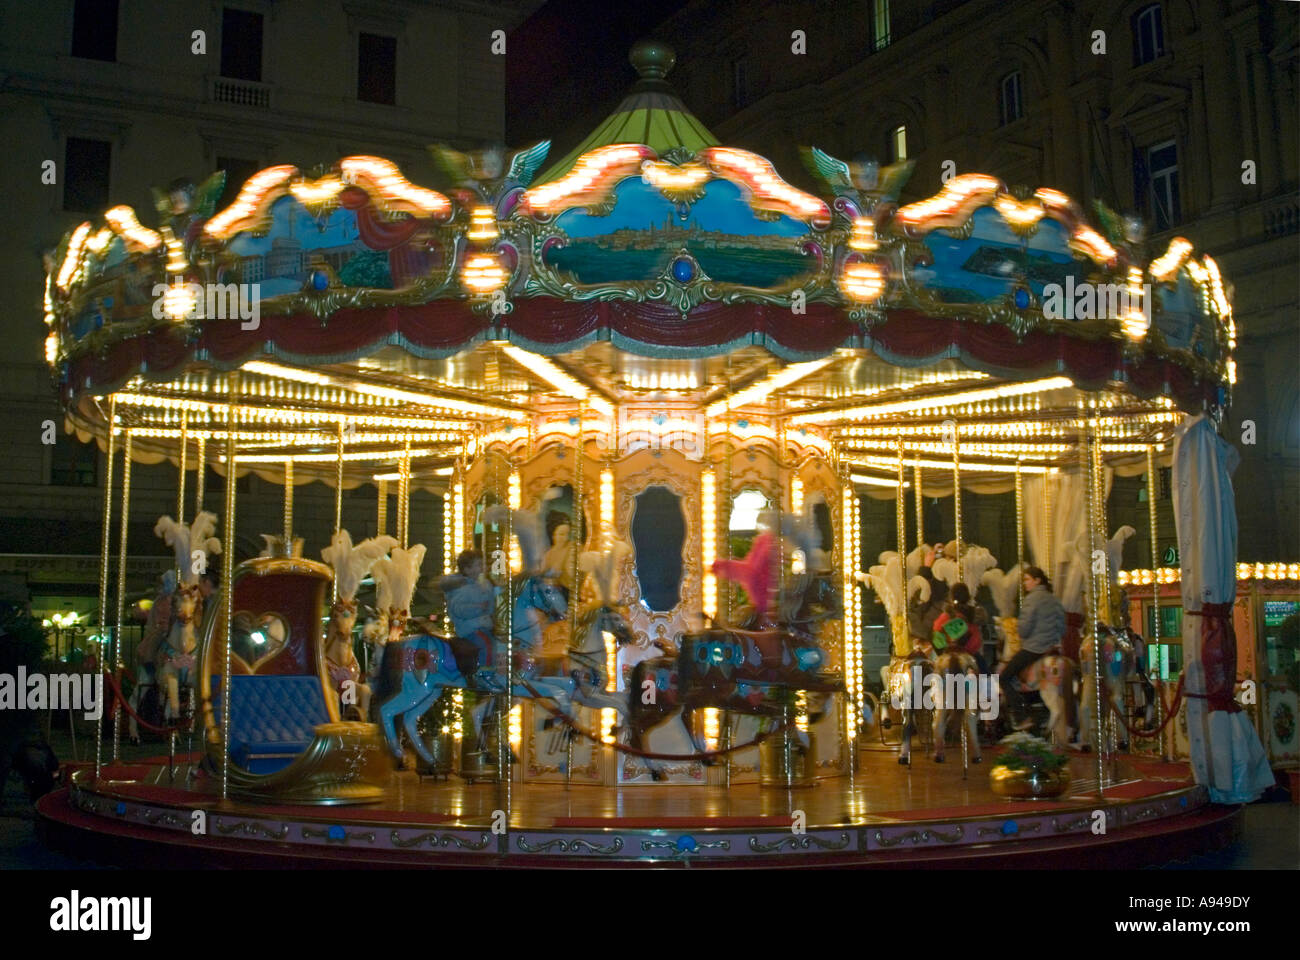 Horizontal close up of a bright glitzy old fashioned carousel at night, with motion blur as it rotates. Stock Photo